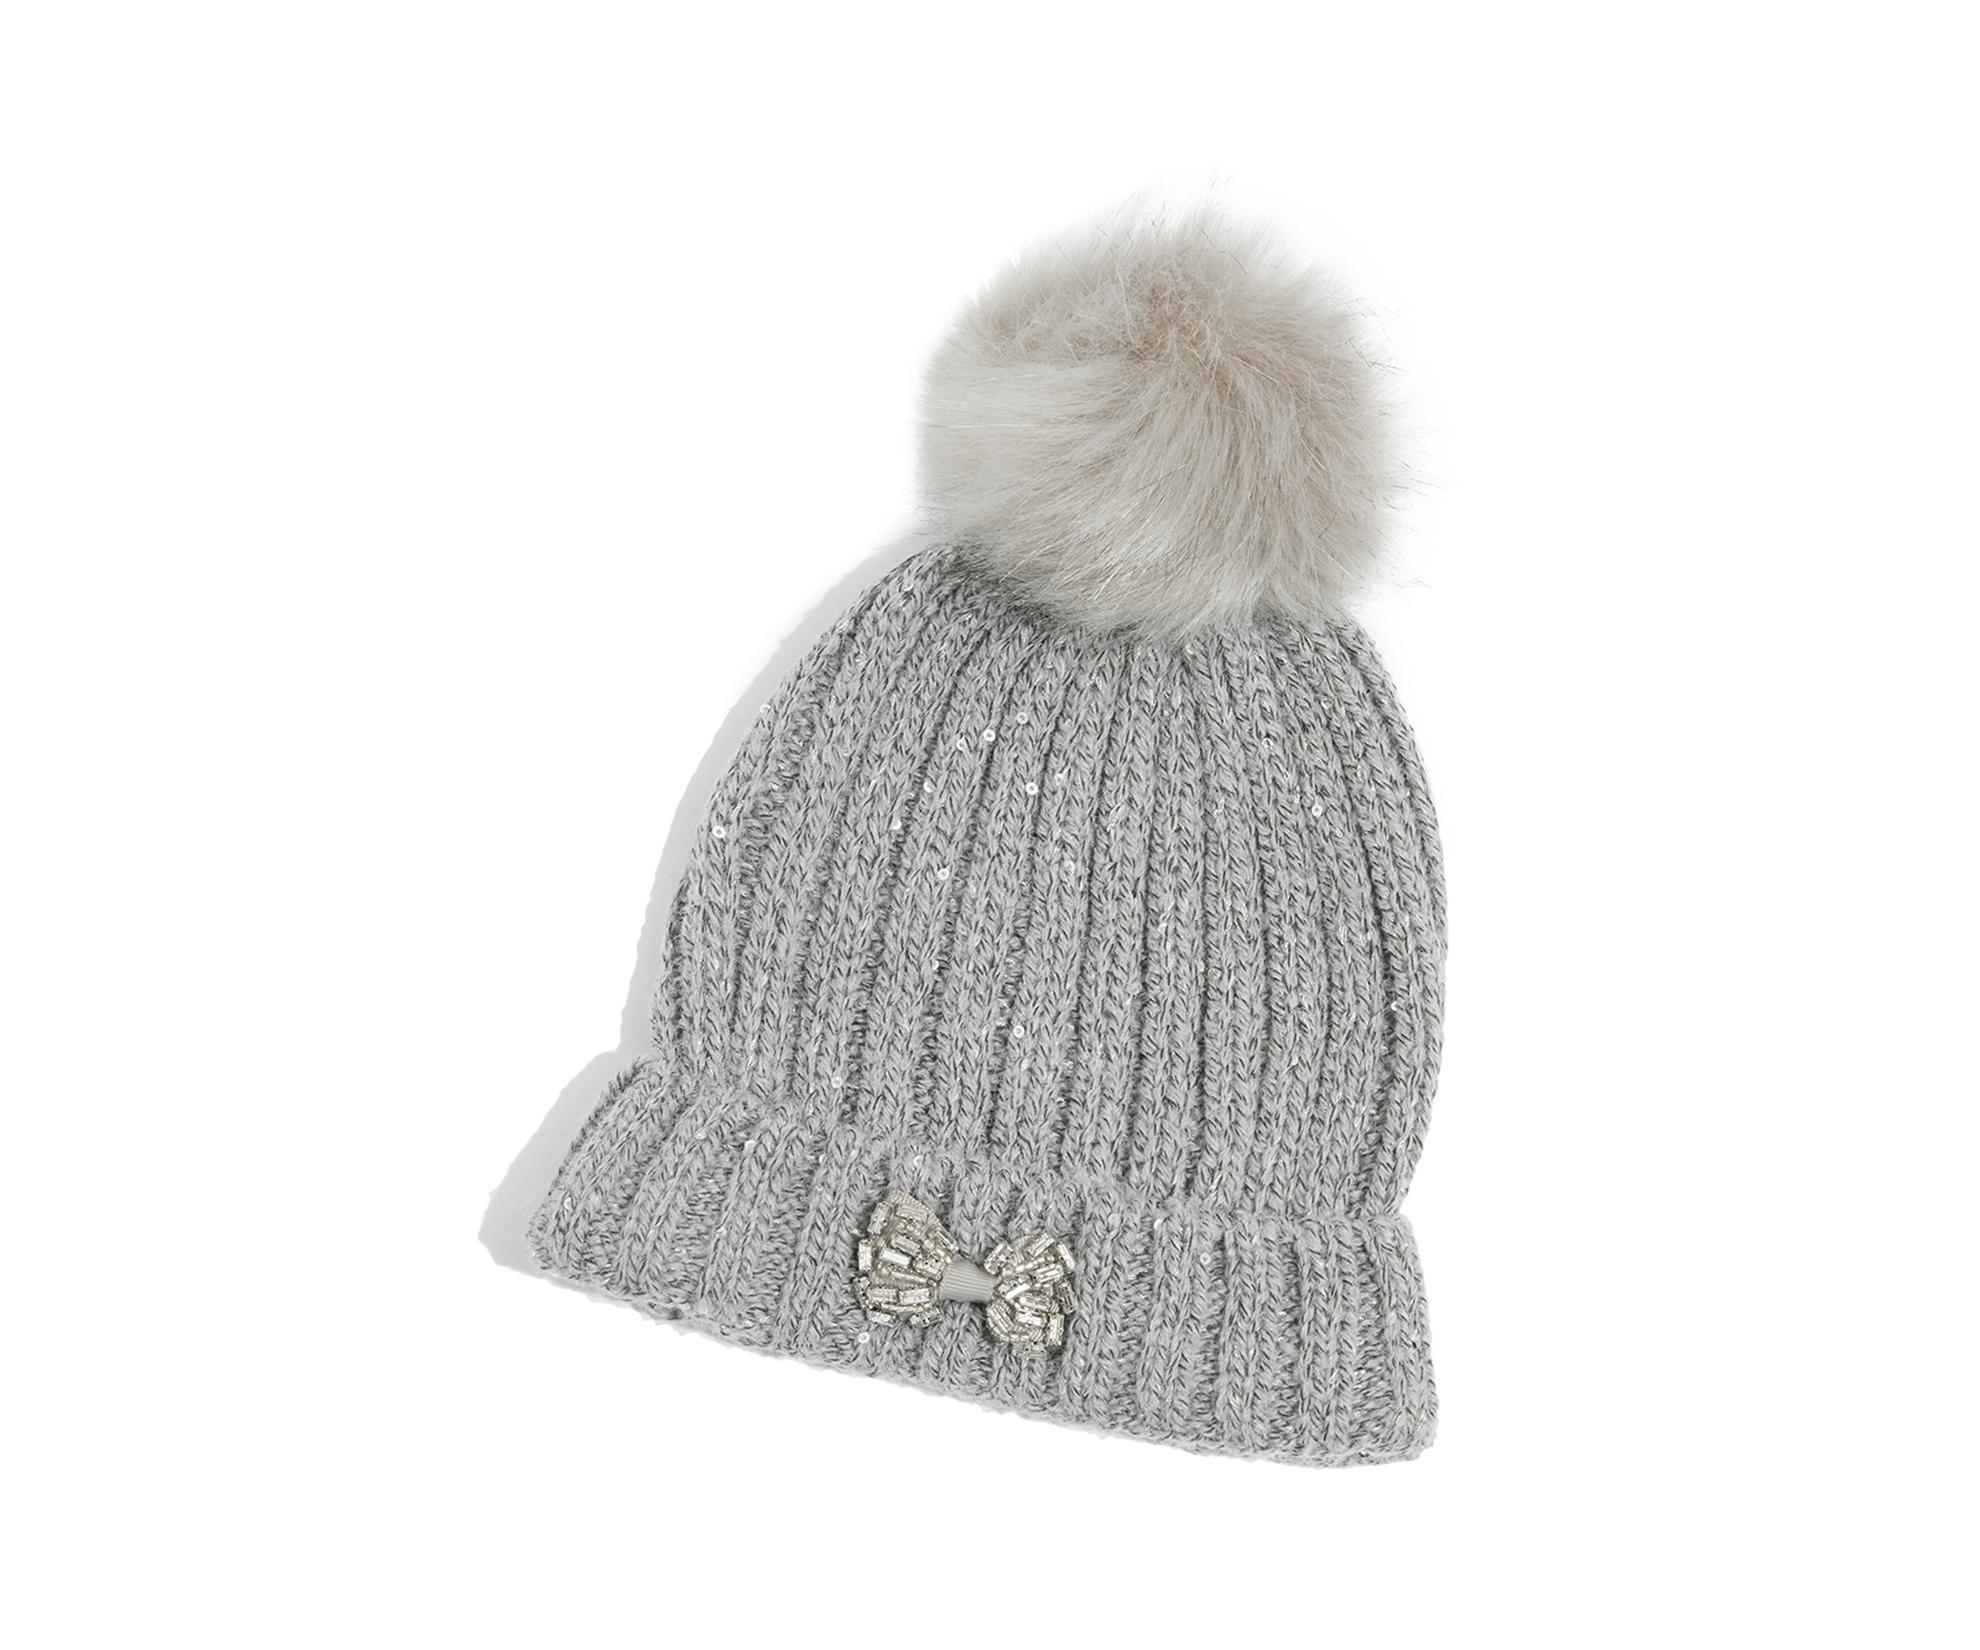 d7b37924d24 Oasis Bow Beanie Hat in Gray - Lyst